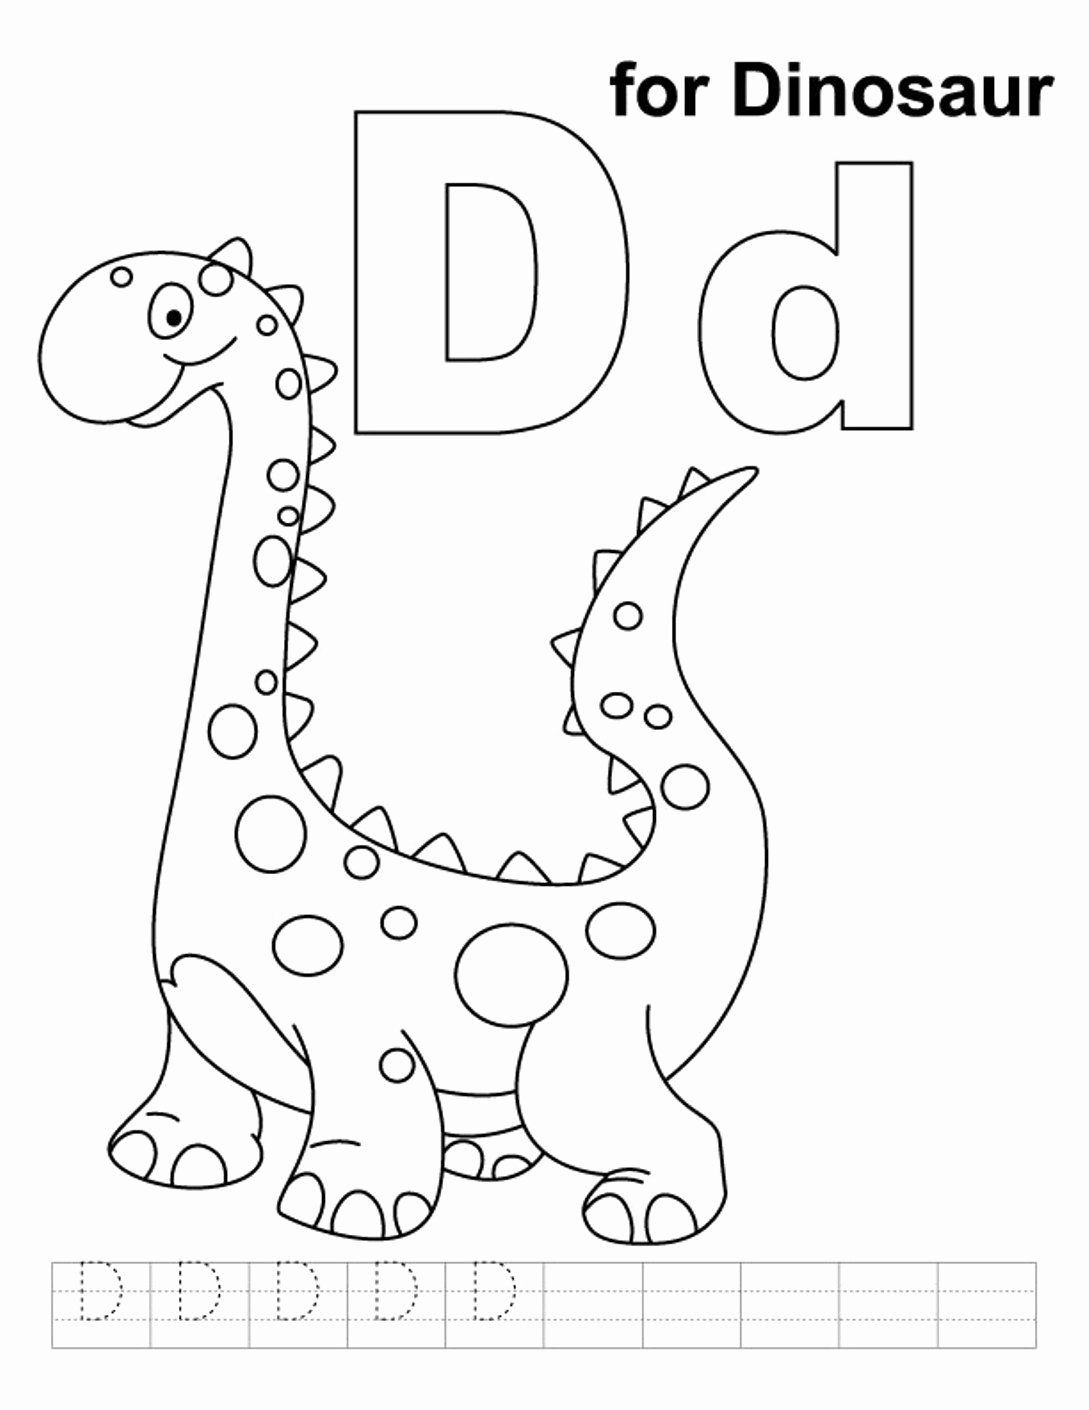 Most Current No Cost Letter Coloring Sheets Thoughts It S No Solution That Coloring Books For Grown Ups Abc Coloring Pages Alphabet Coloring Pages Abc Coloring